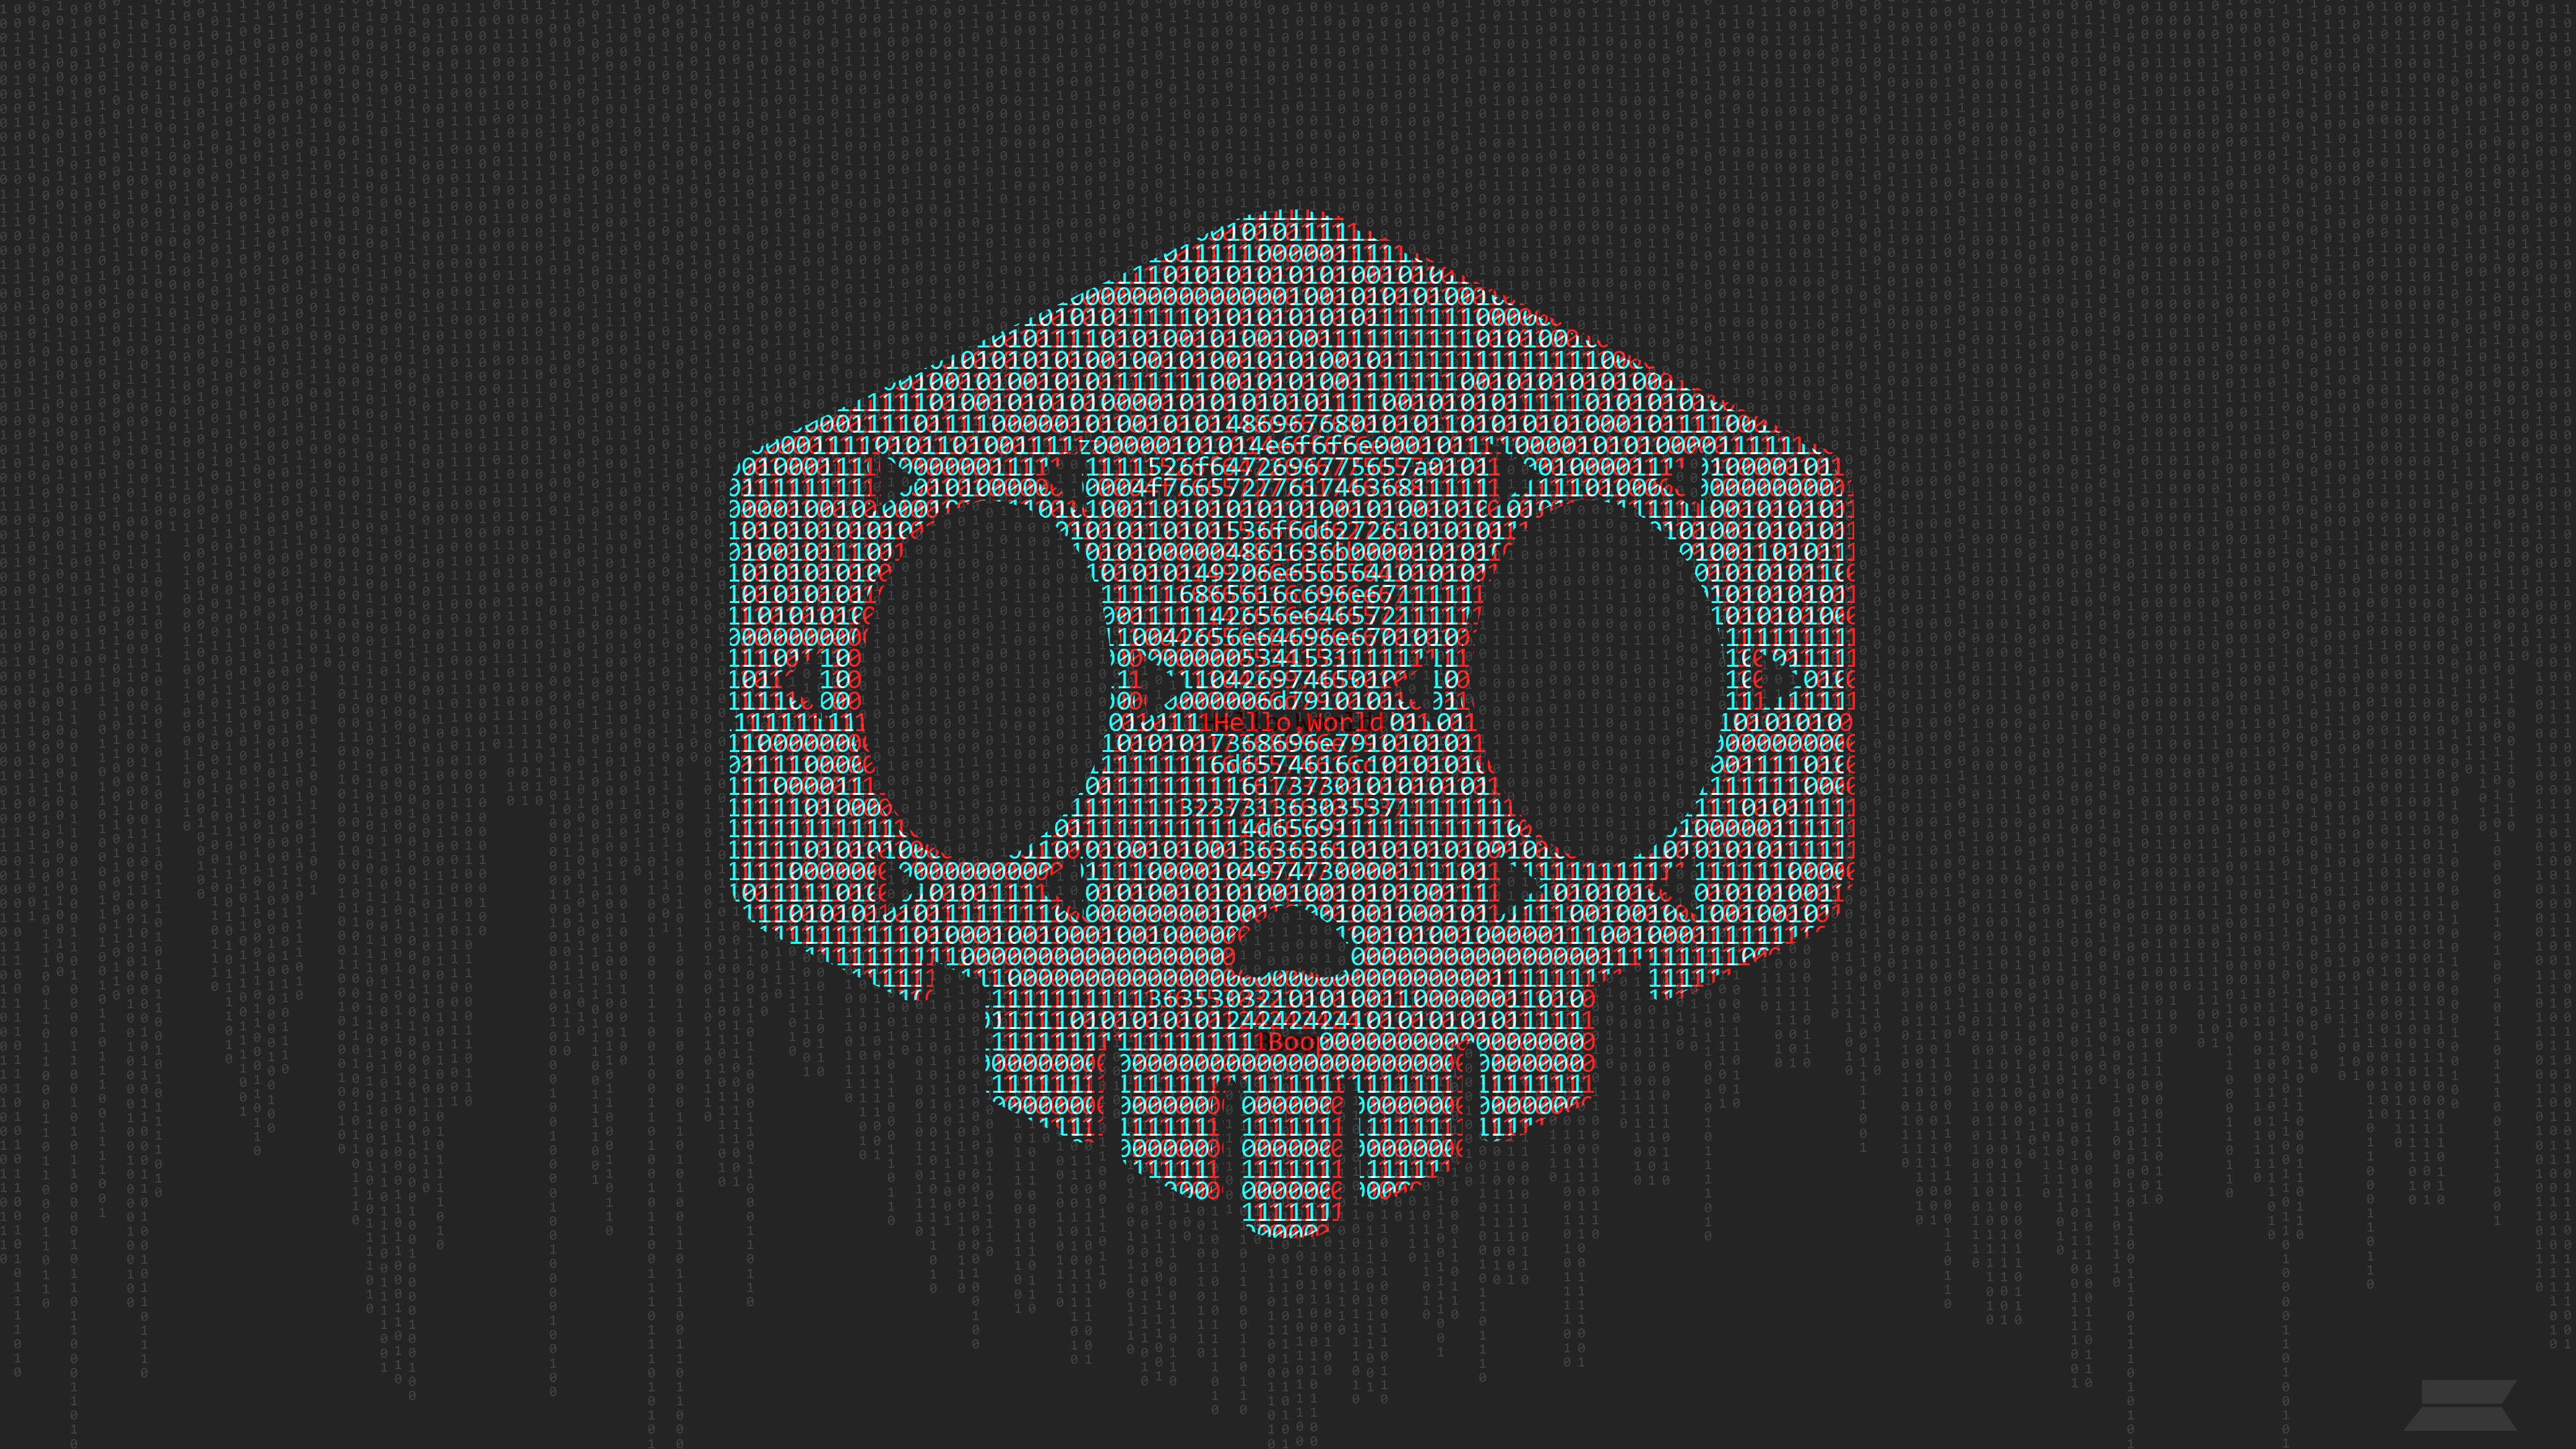 Skull Wallpaper 4k Air Media Design